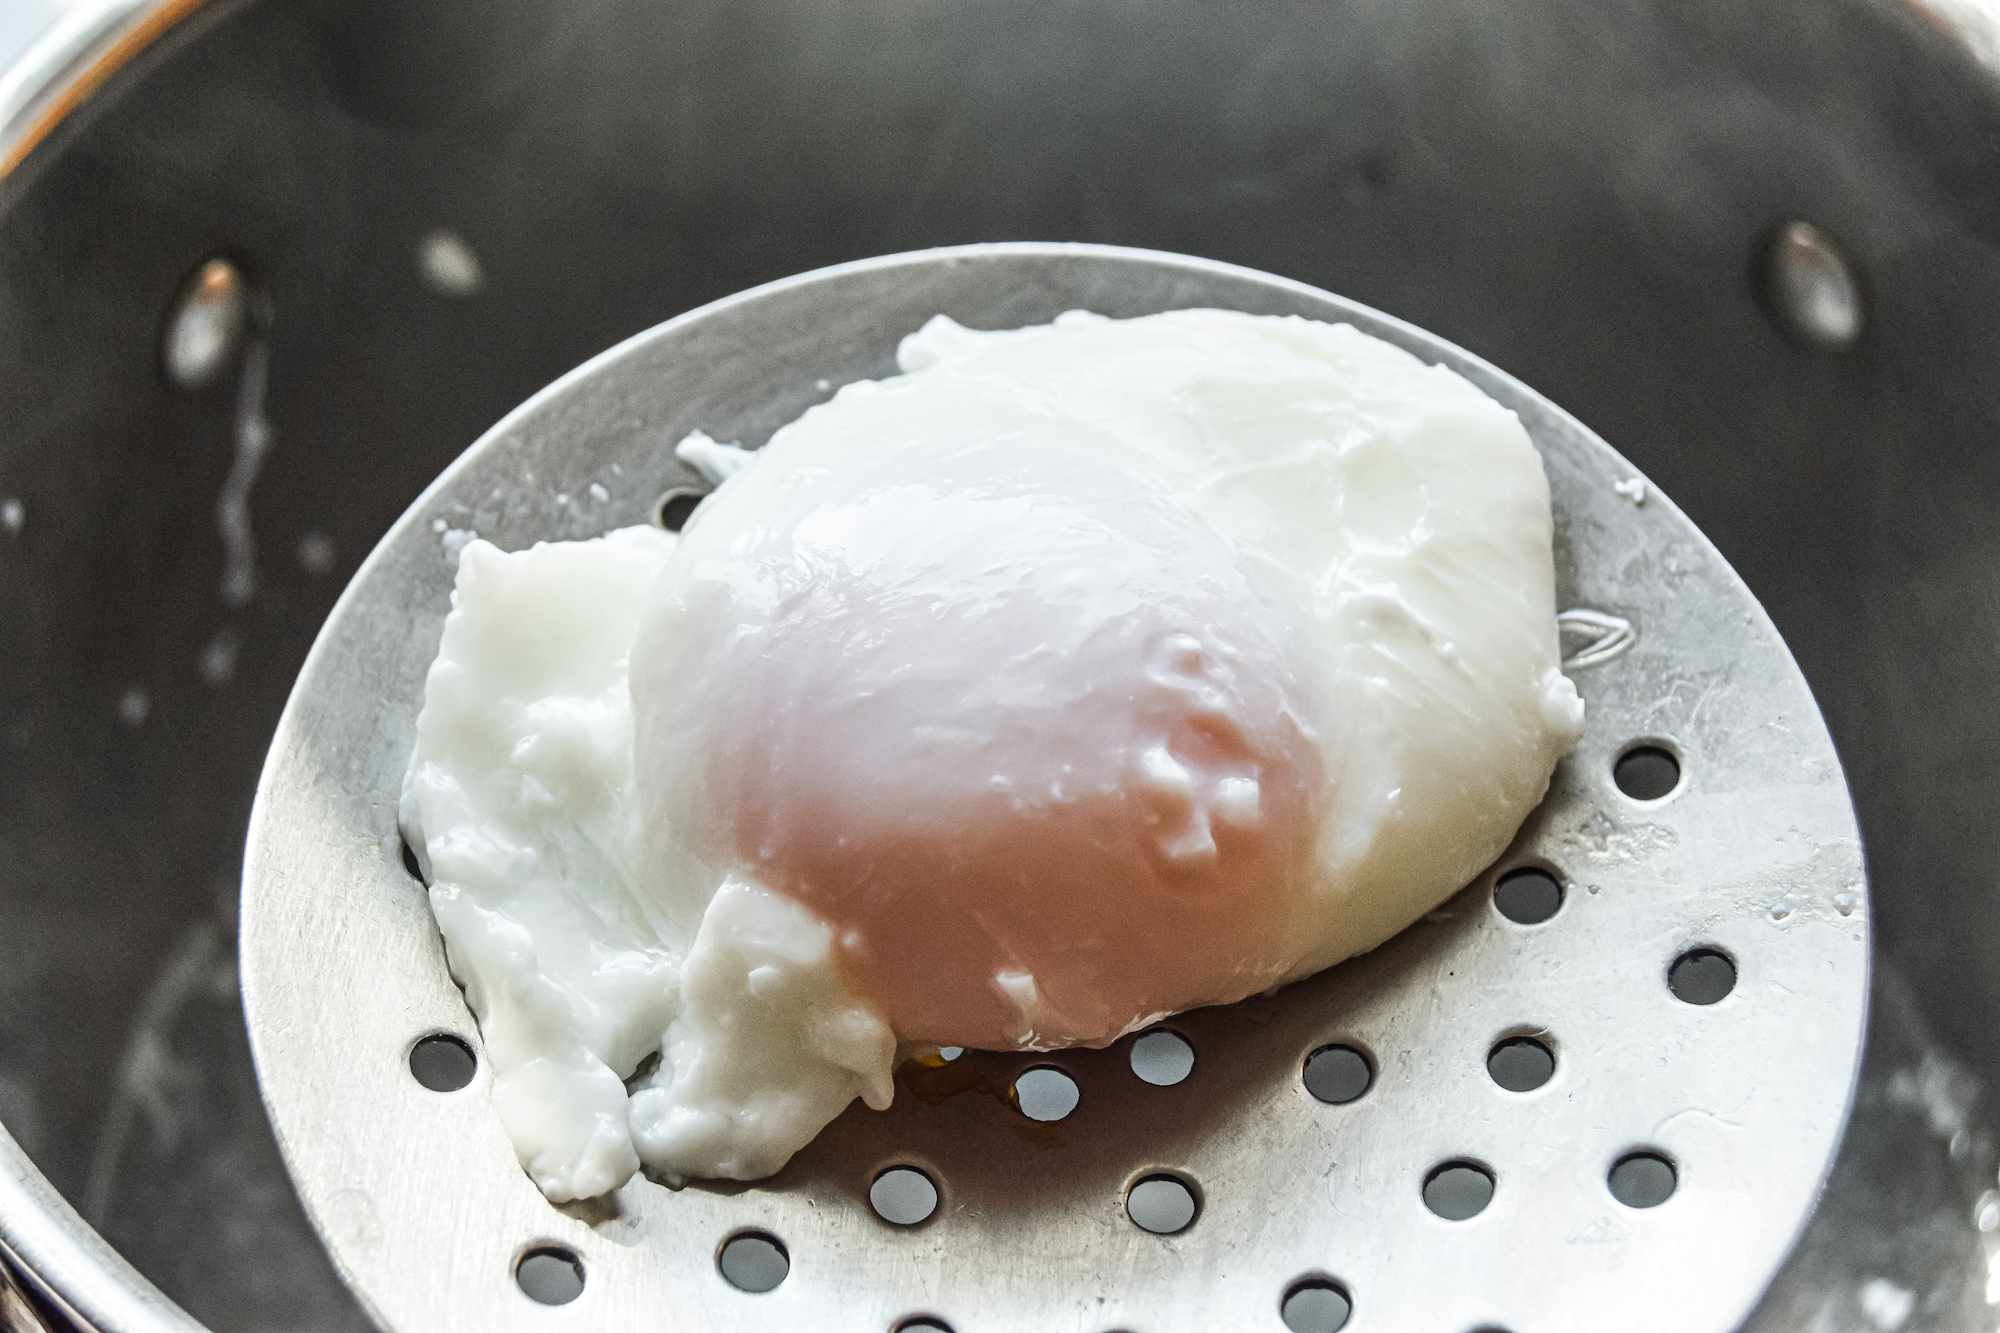 A poached egg in the bottom of a strainer.